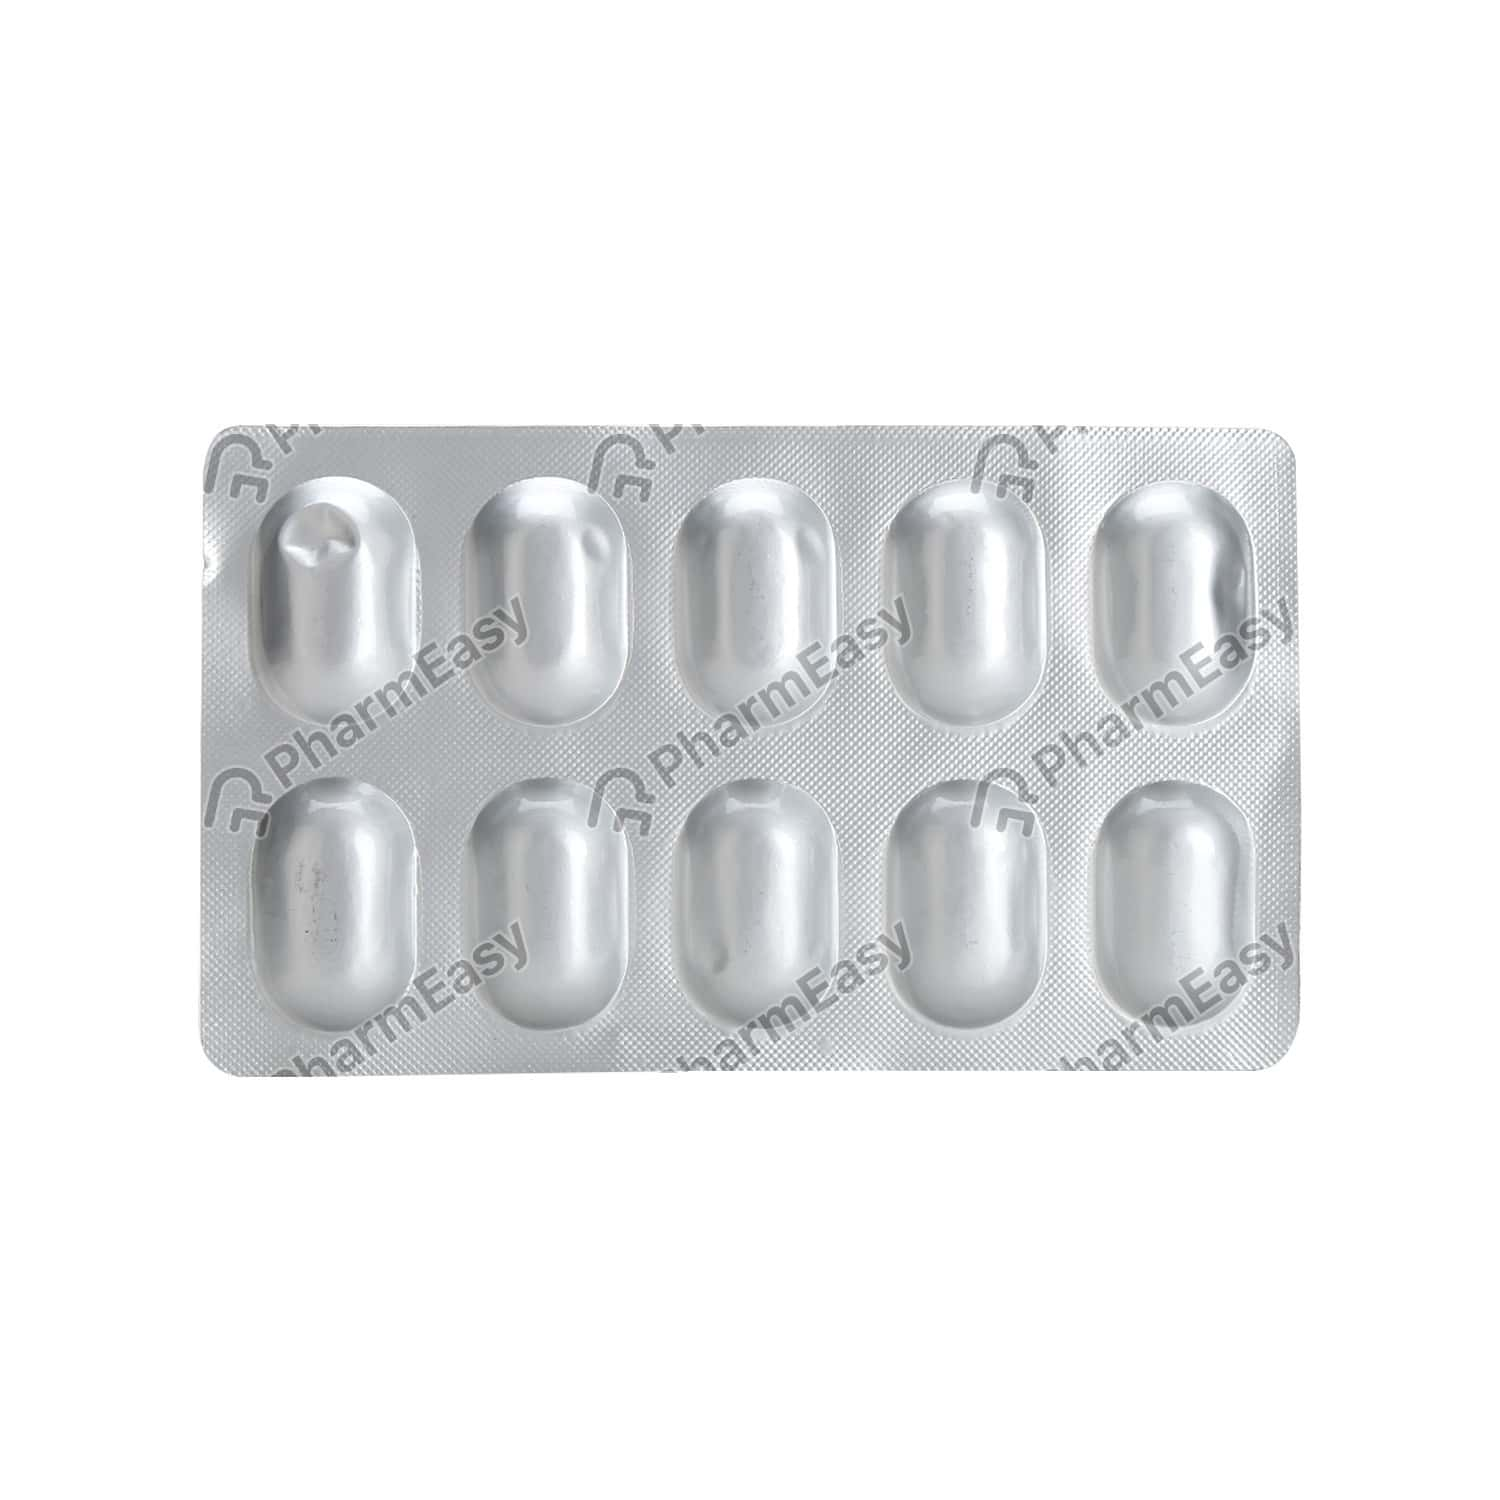 Gudcef Plus Strip Of 10 Tablets